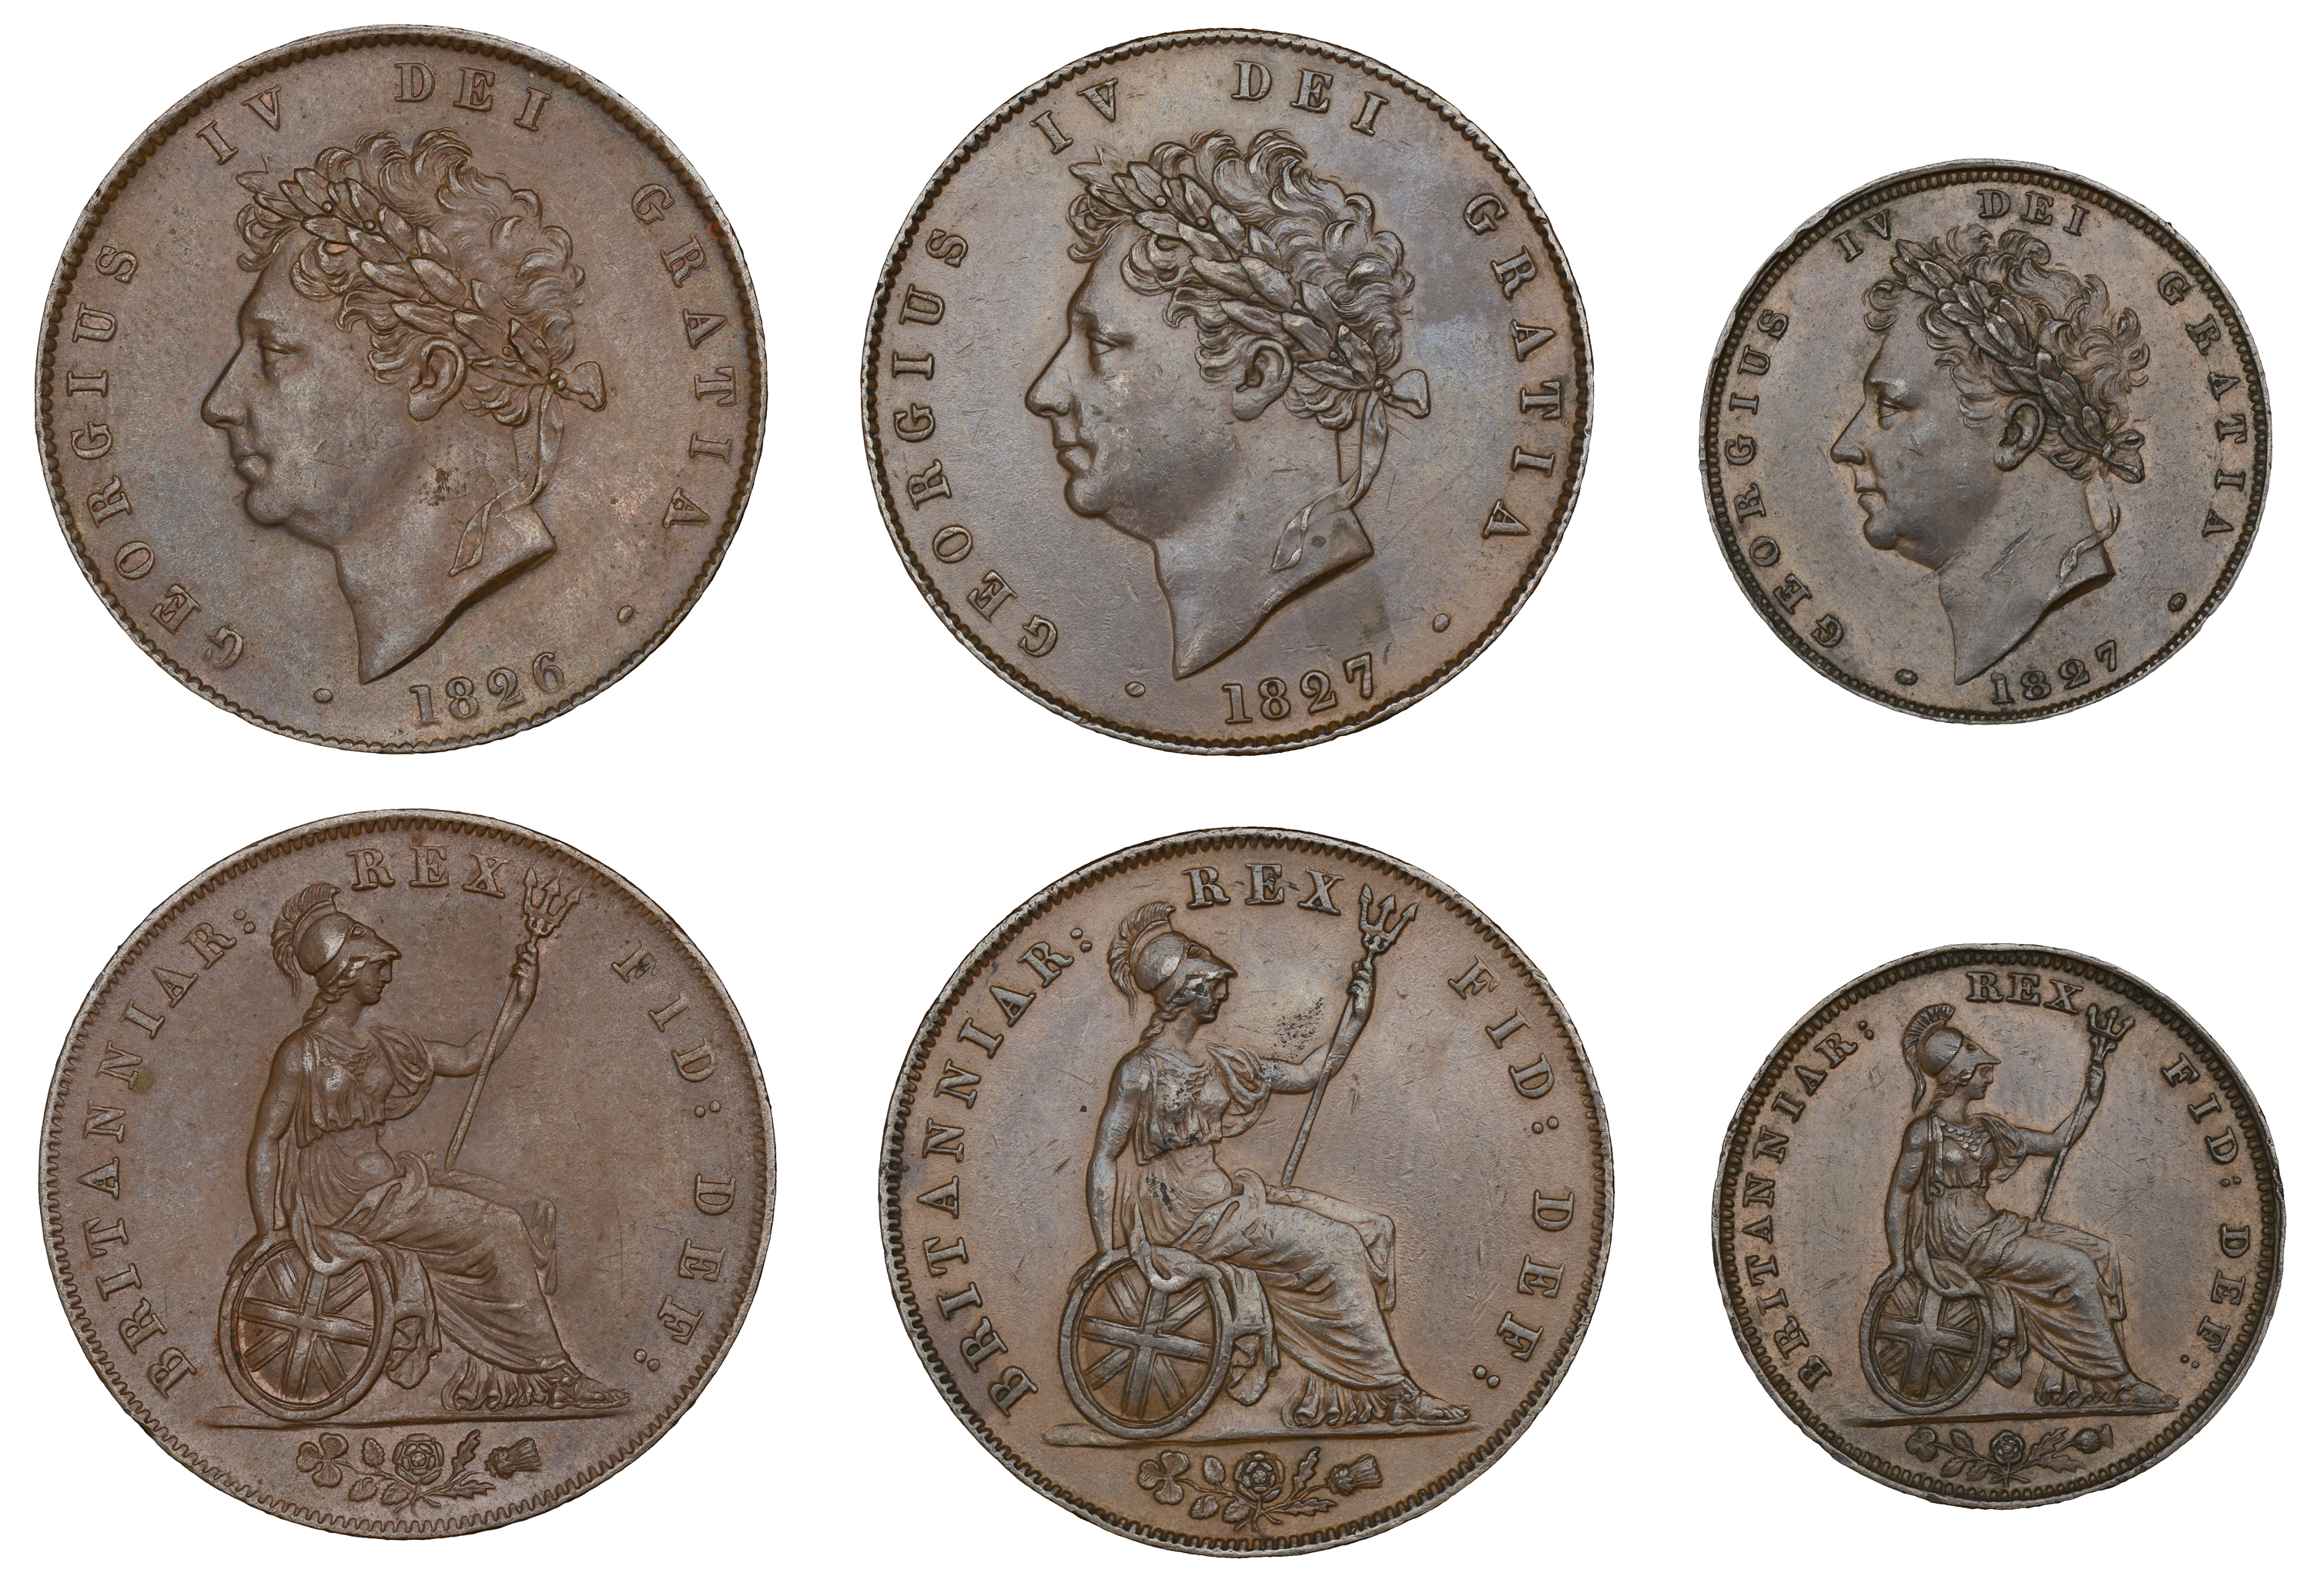 British Coins from the Collection of Ian Sawden